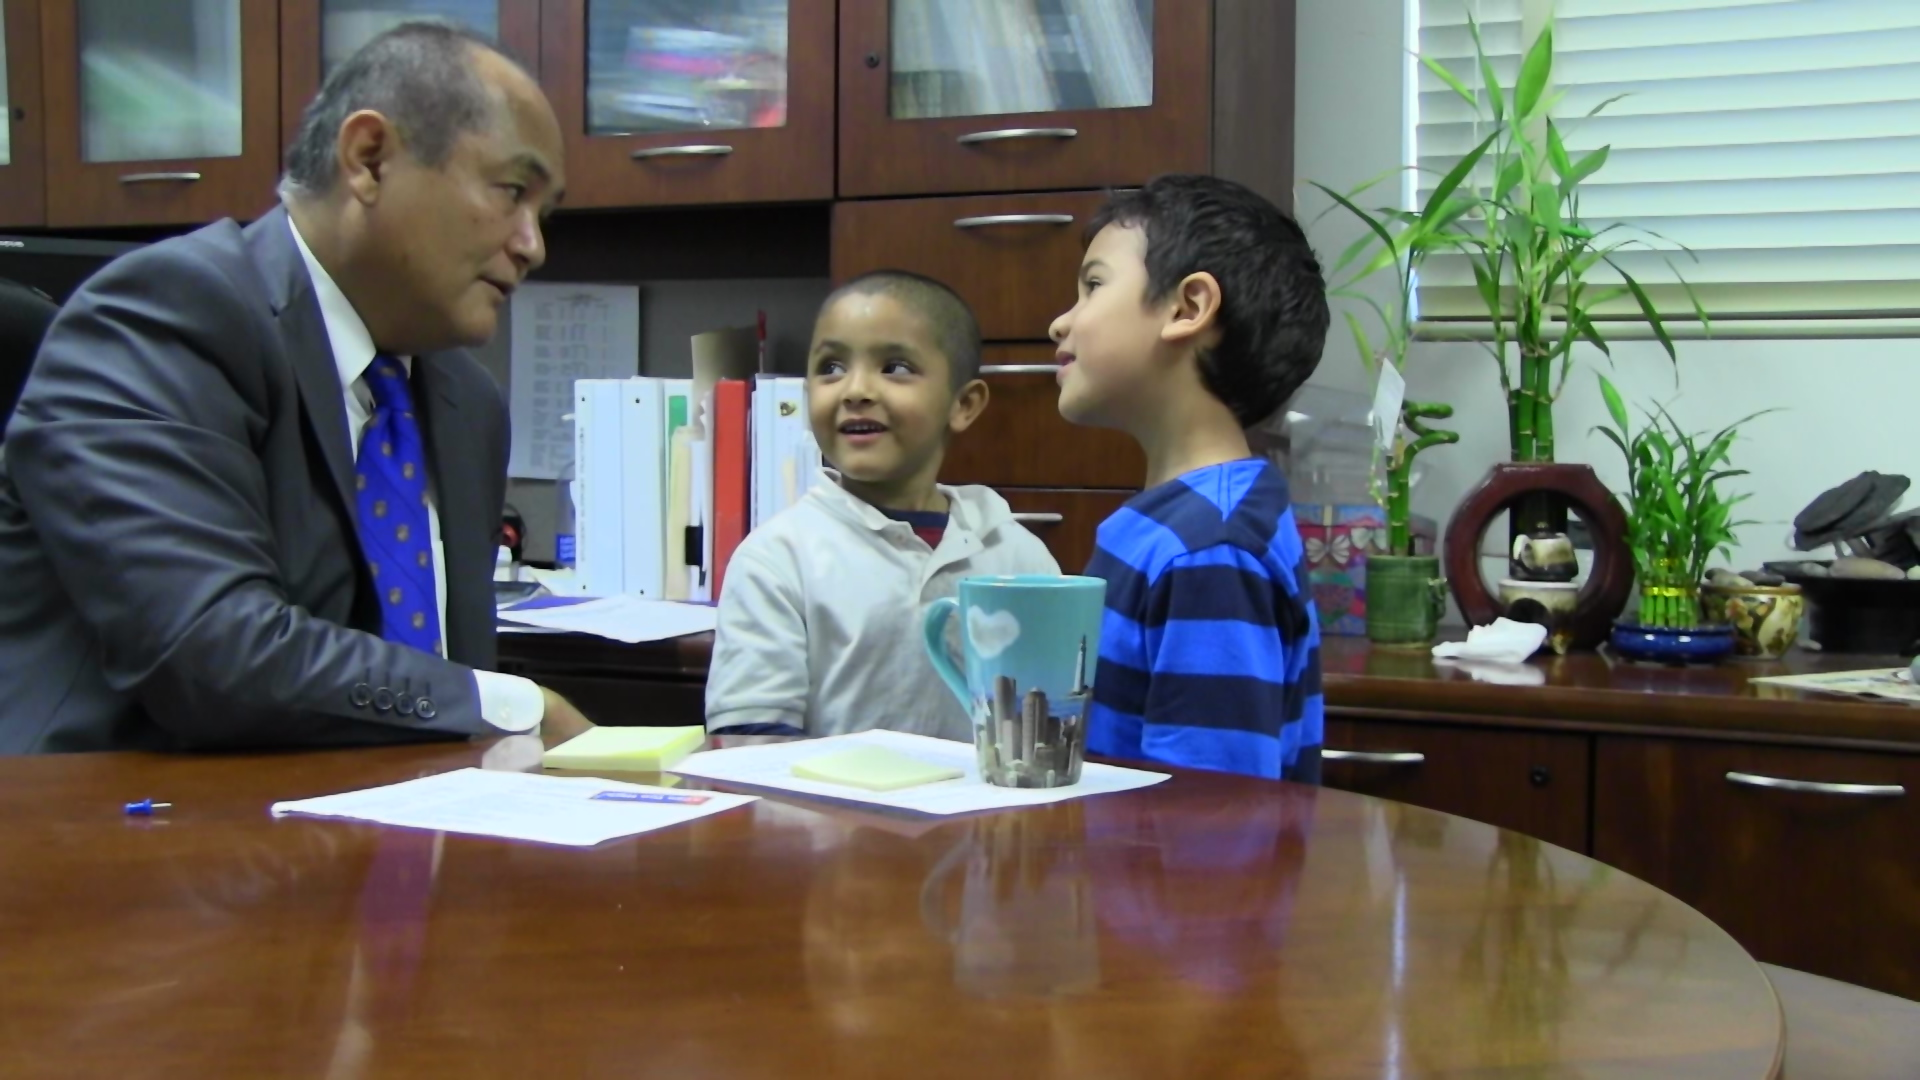 After a tussle on the playground, these two kindergarteners were sent to the principal's office. After going through the restorative practices exercise, they decided to become best friends.